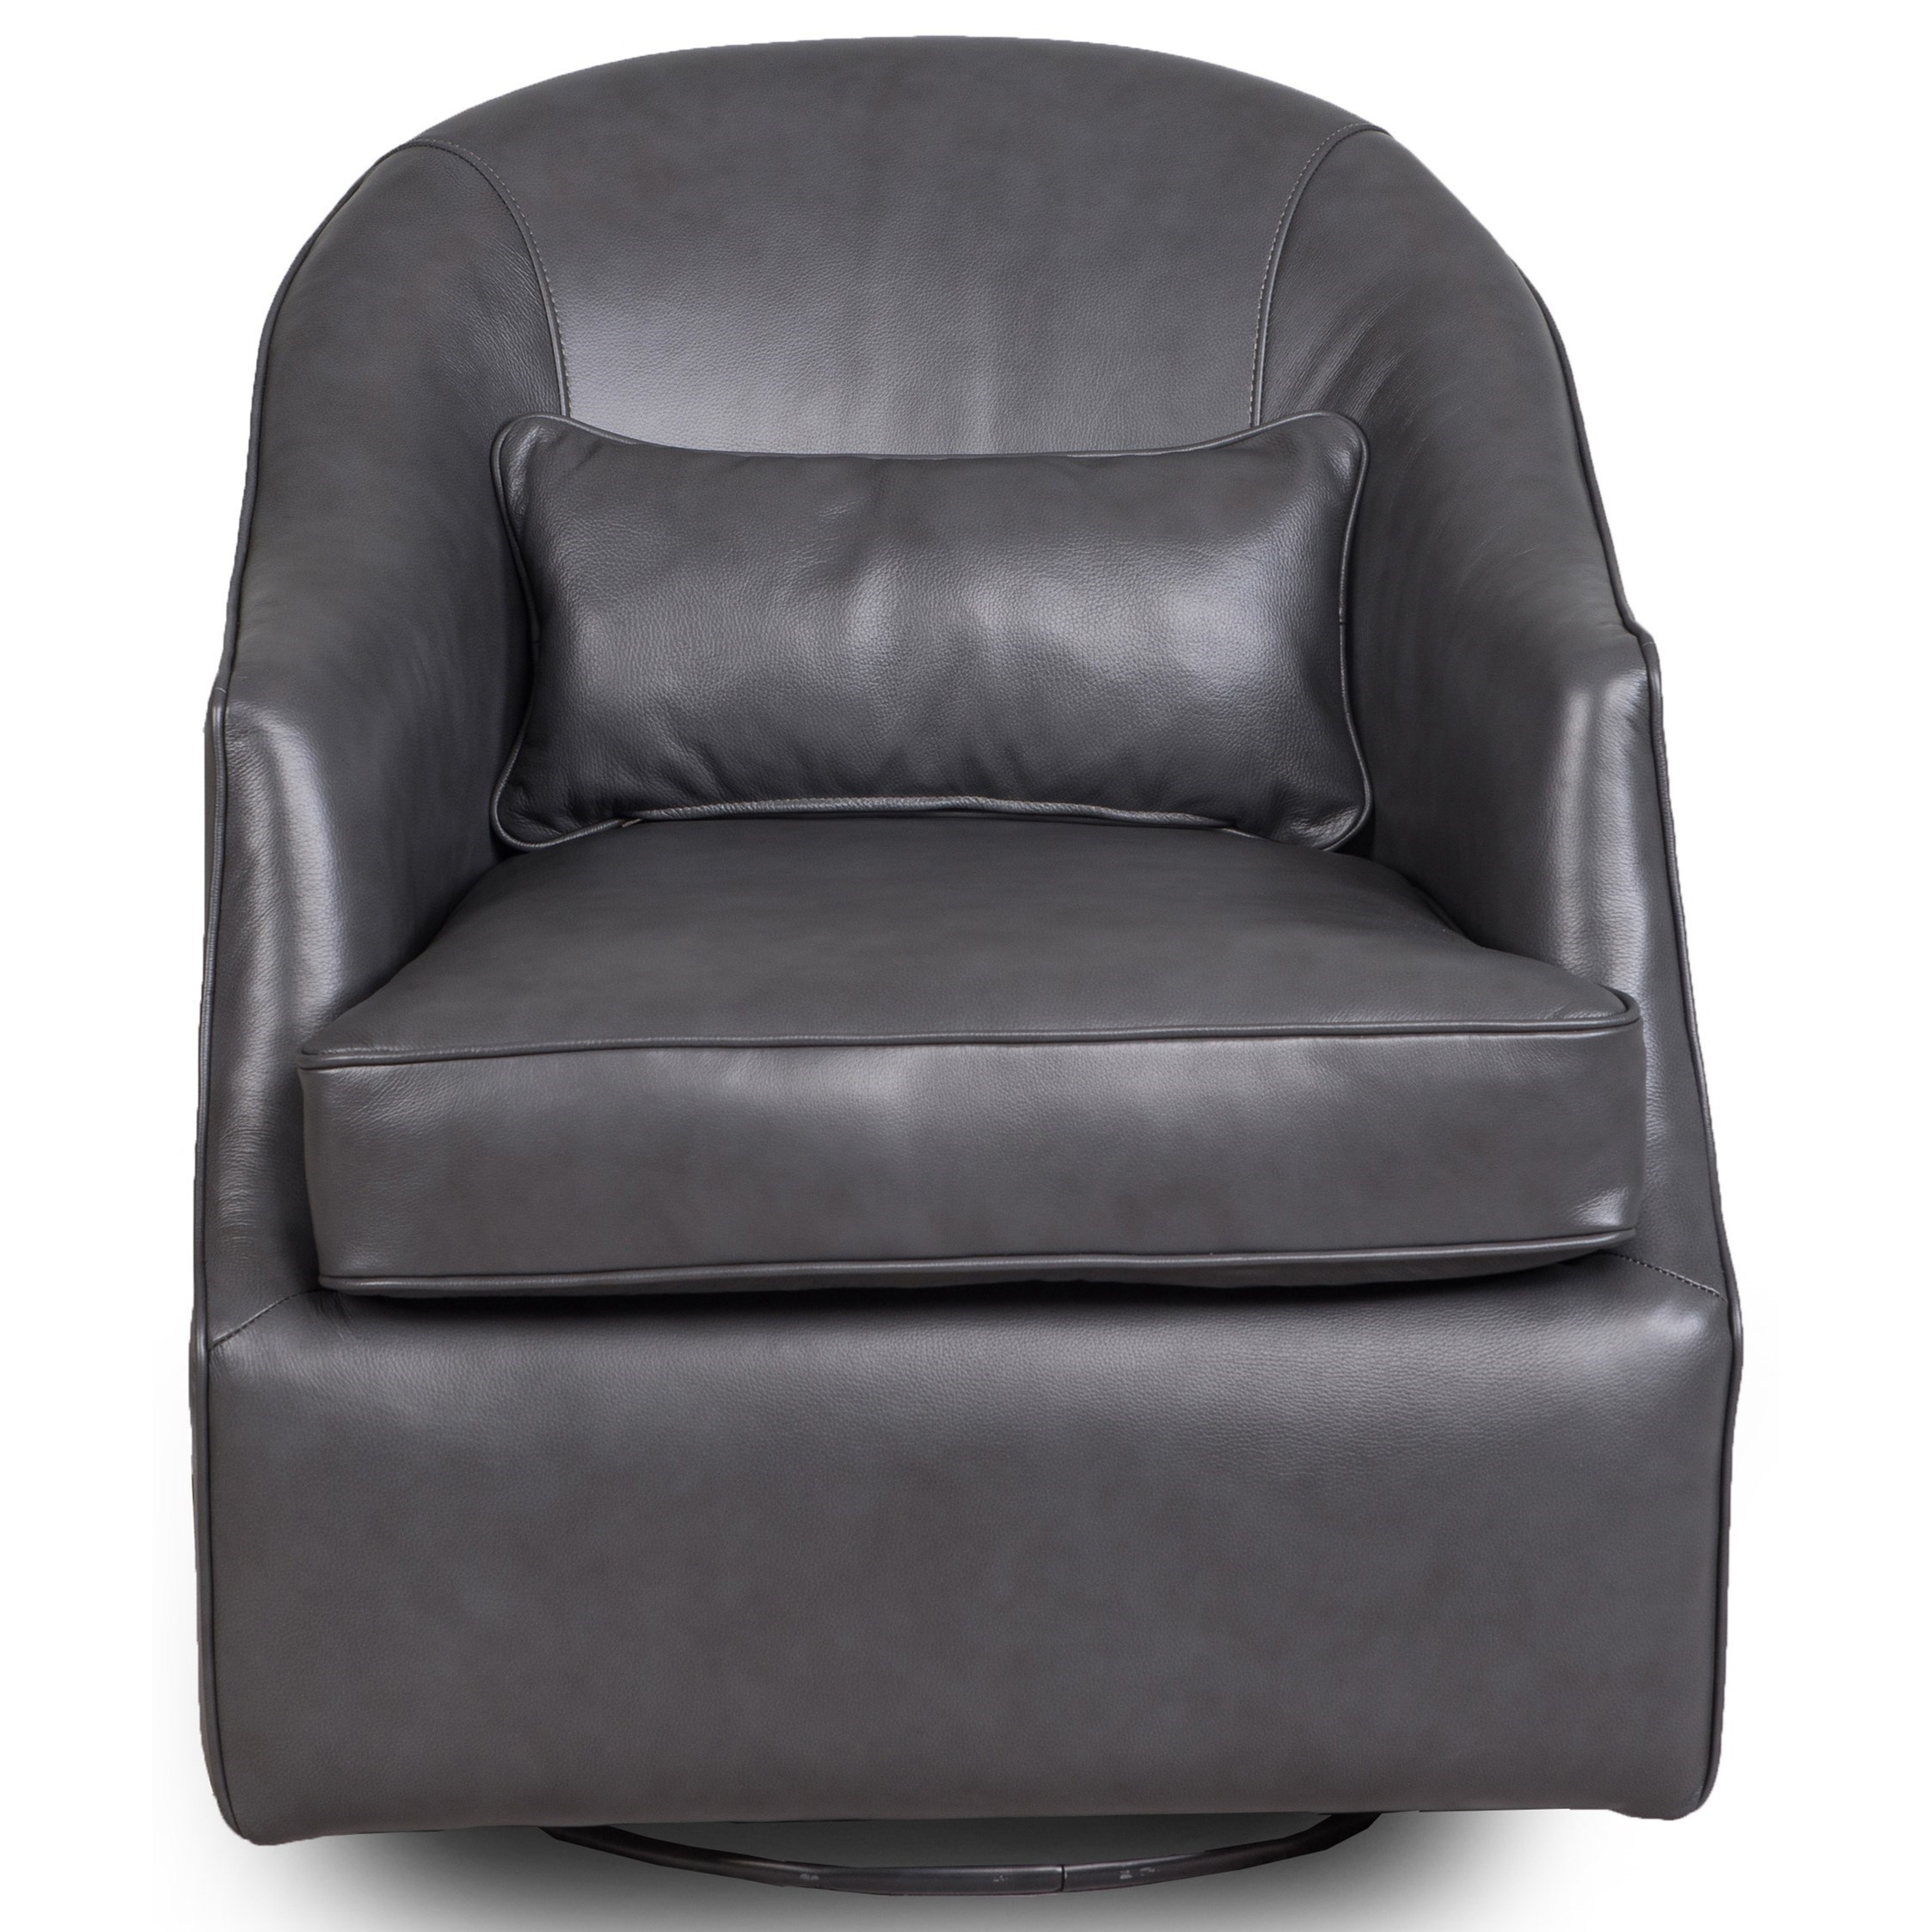 1499 Swivel Chair by Synergy Home Furnishings at Stoney Creek Furniture